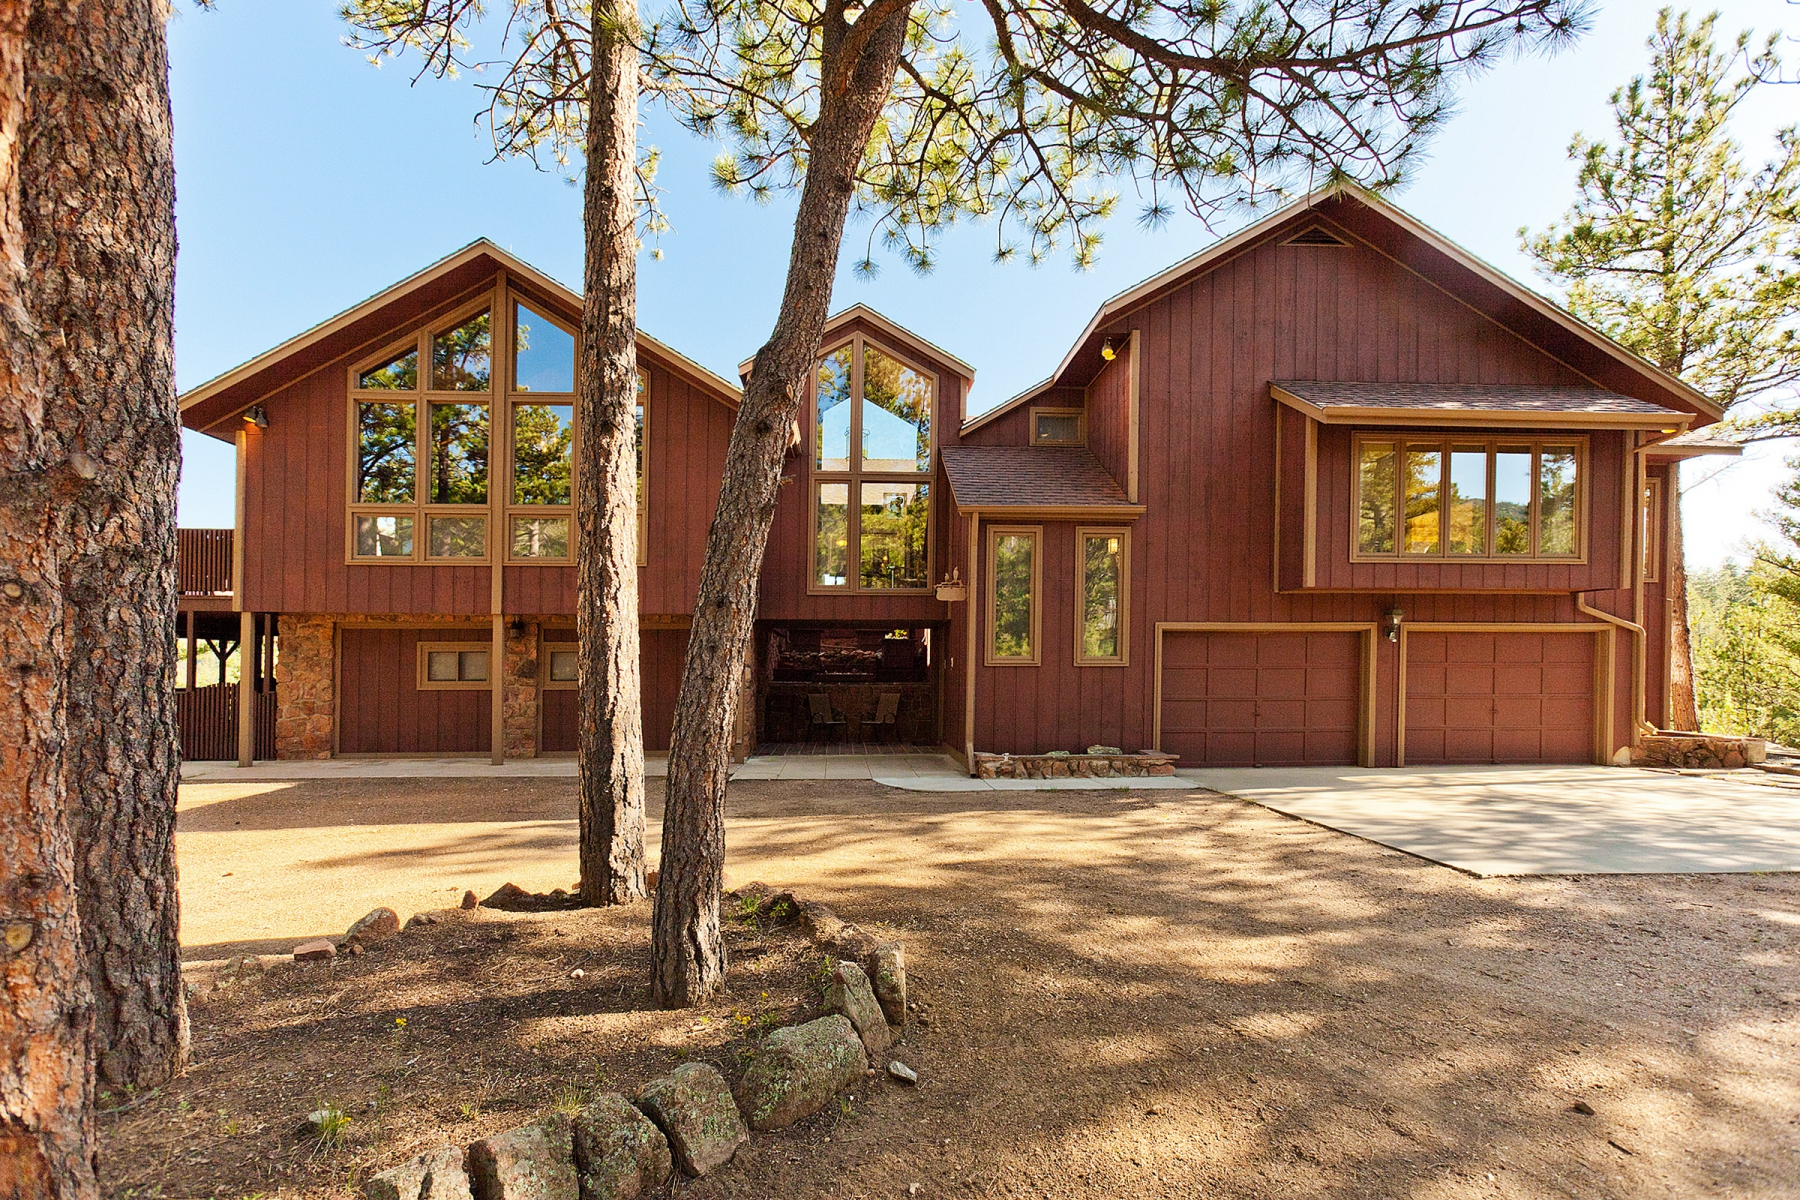 Single Family Home for Sale at Owl's Nest 129 Greystone Trail Evergreen, Colorado 80439 United States